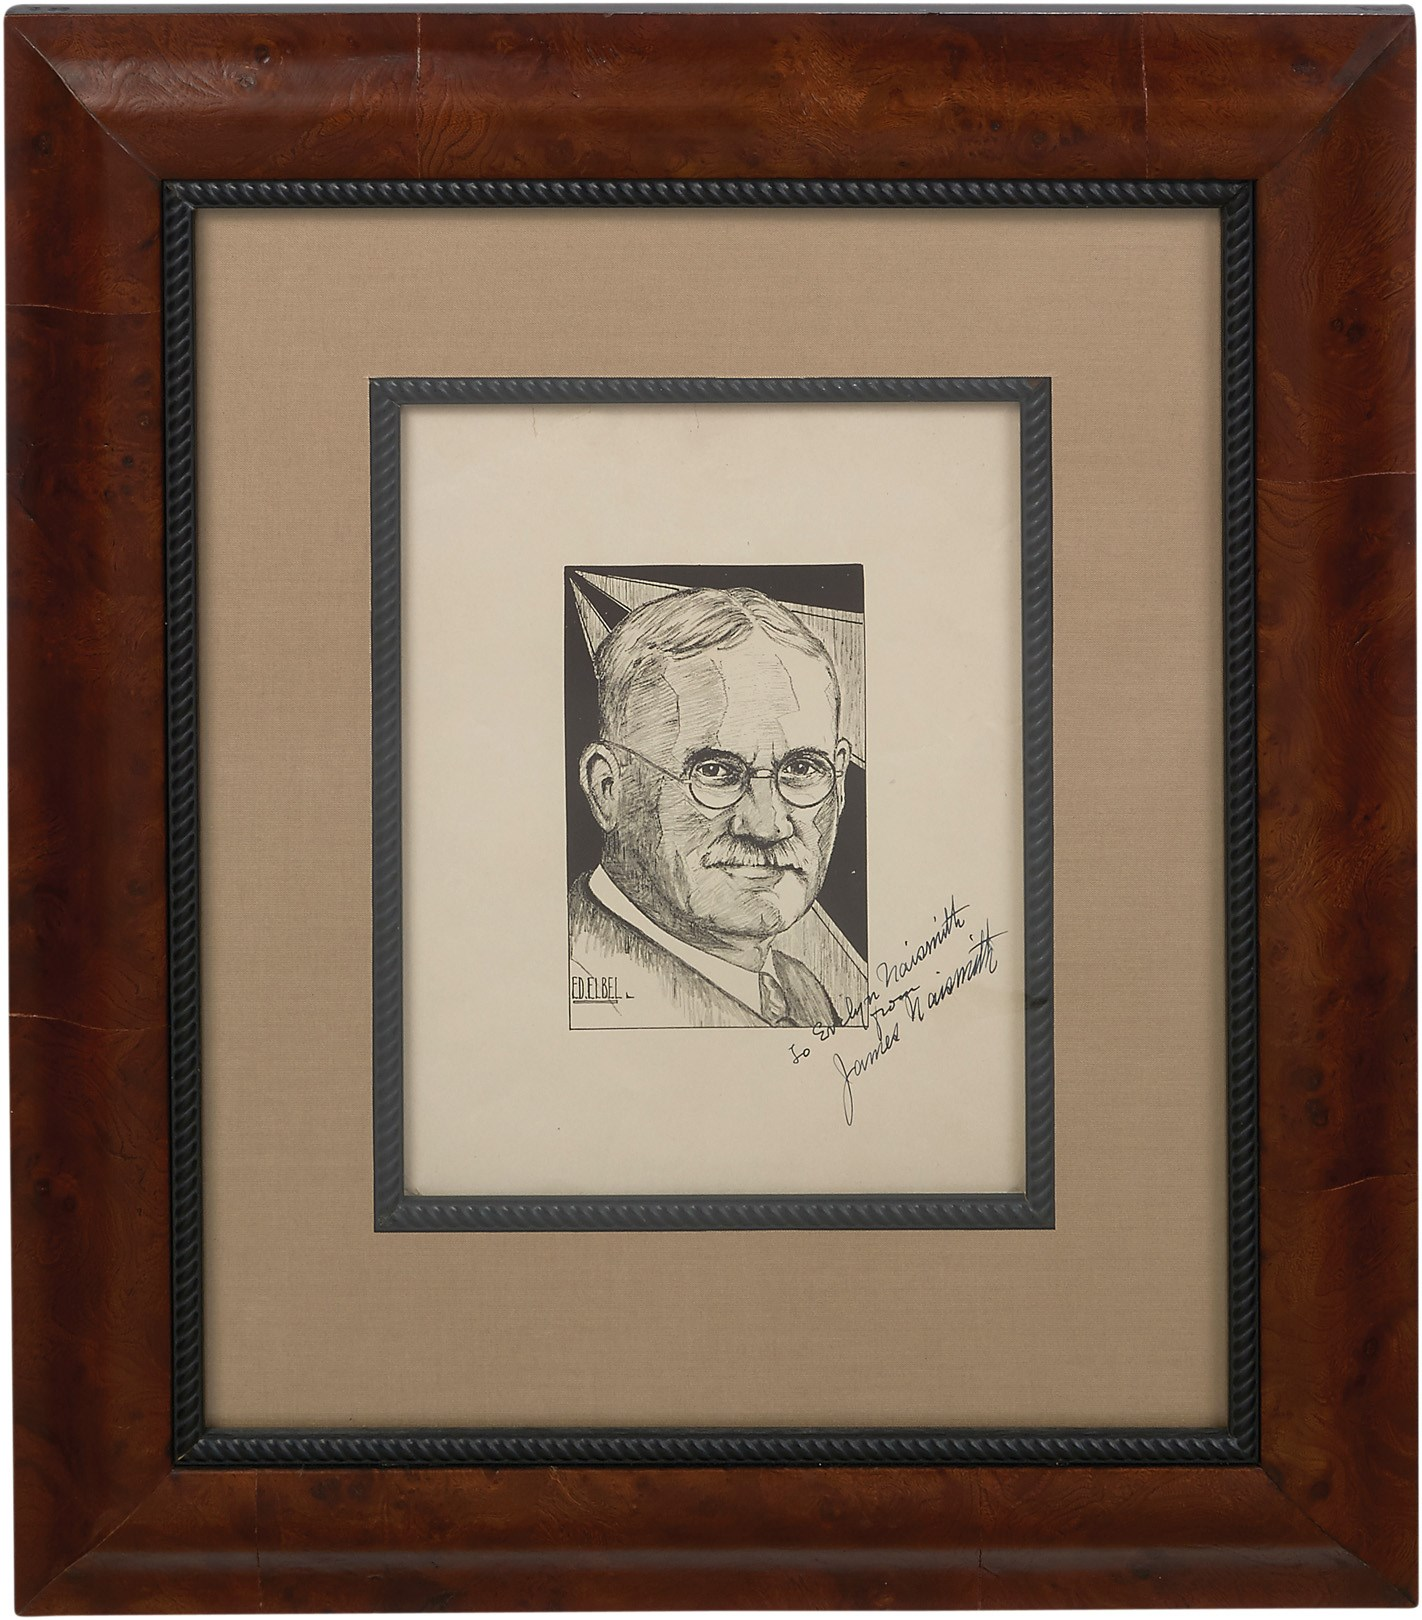 1936 James Naismith Signed Photograph to His Wife (JSA)